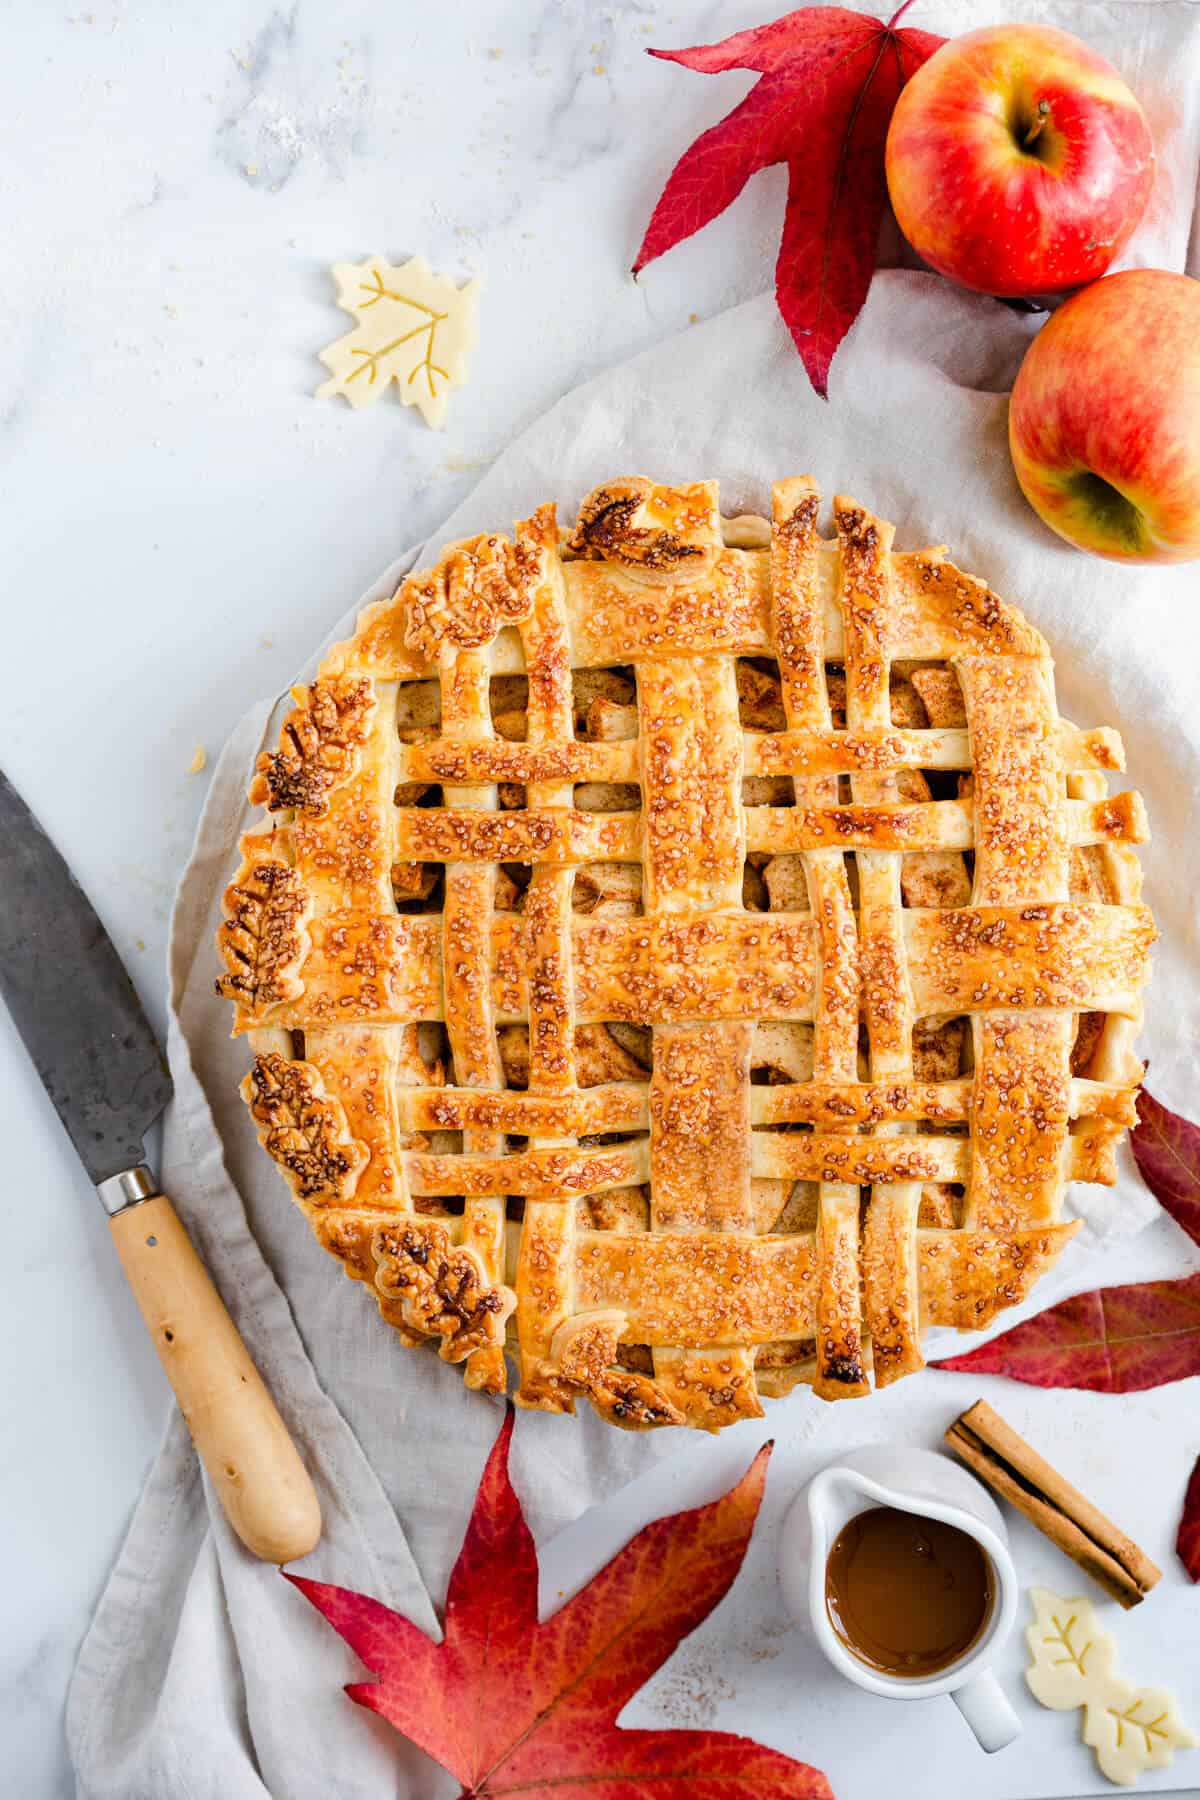 Apple pie with delicious caramel sauce. Classic recipe for delicious dessert! #apple pie #vegan | via @annabanana.co